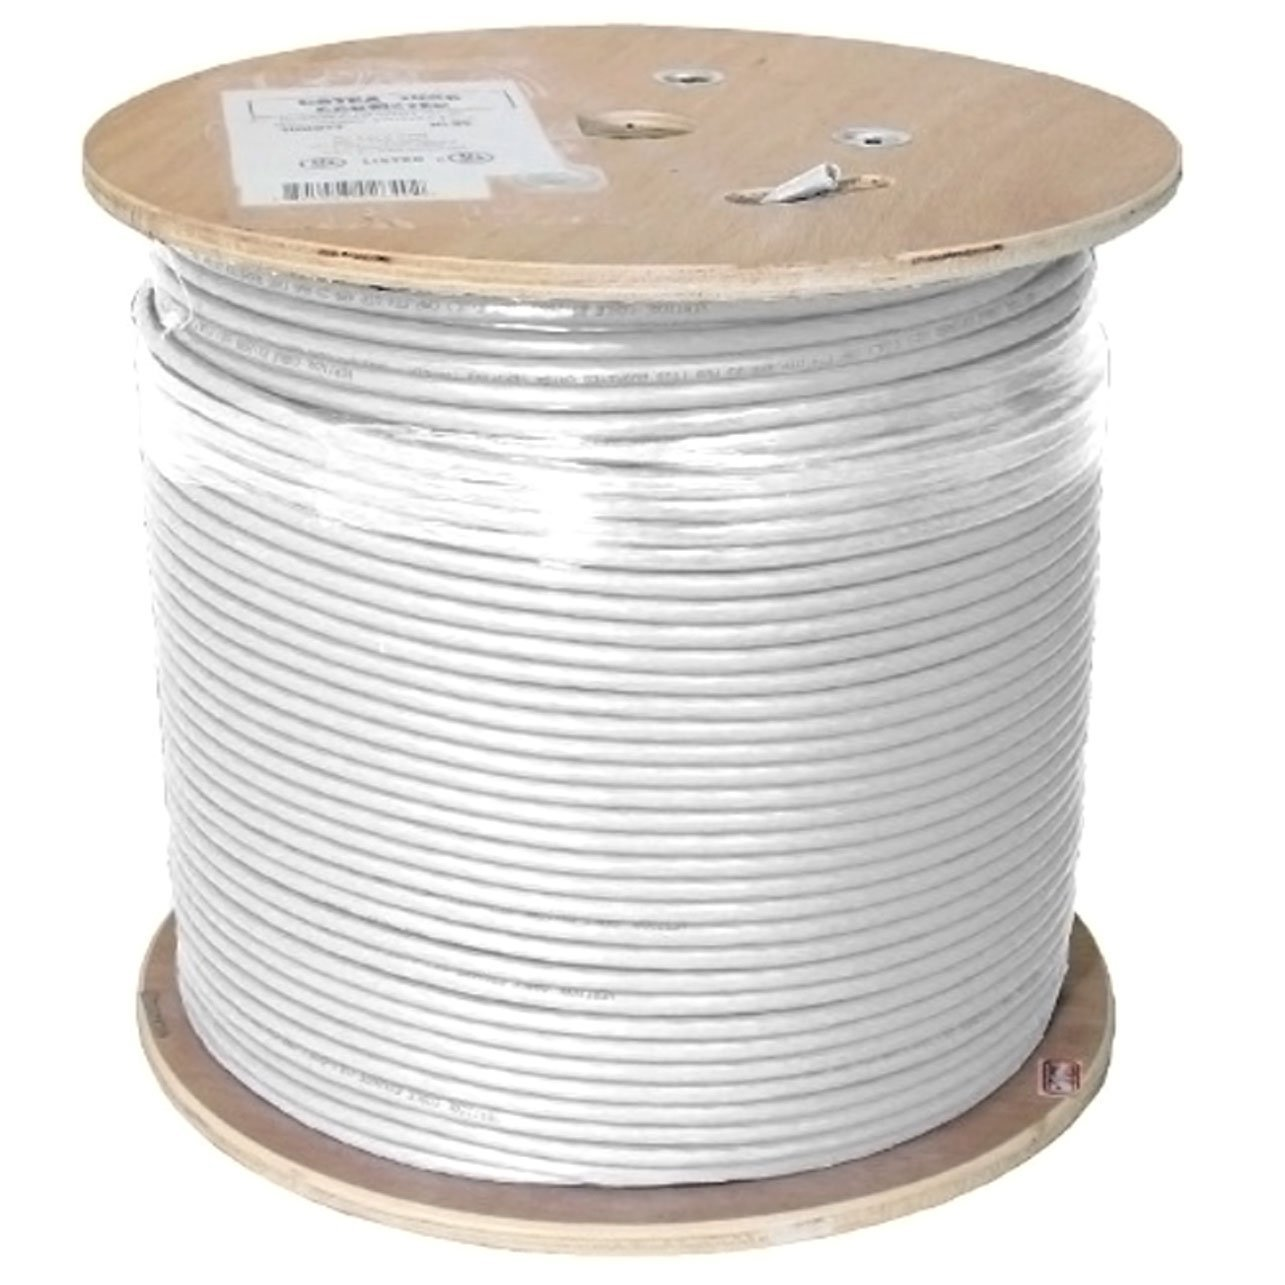 Cheap Cat 6a 1000ft, find Cat 6a 1000ft deals on line at Alibaba.com